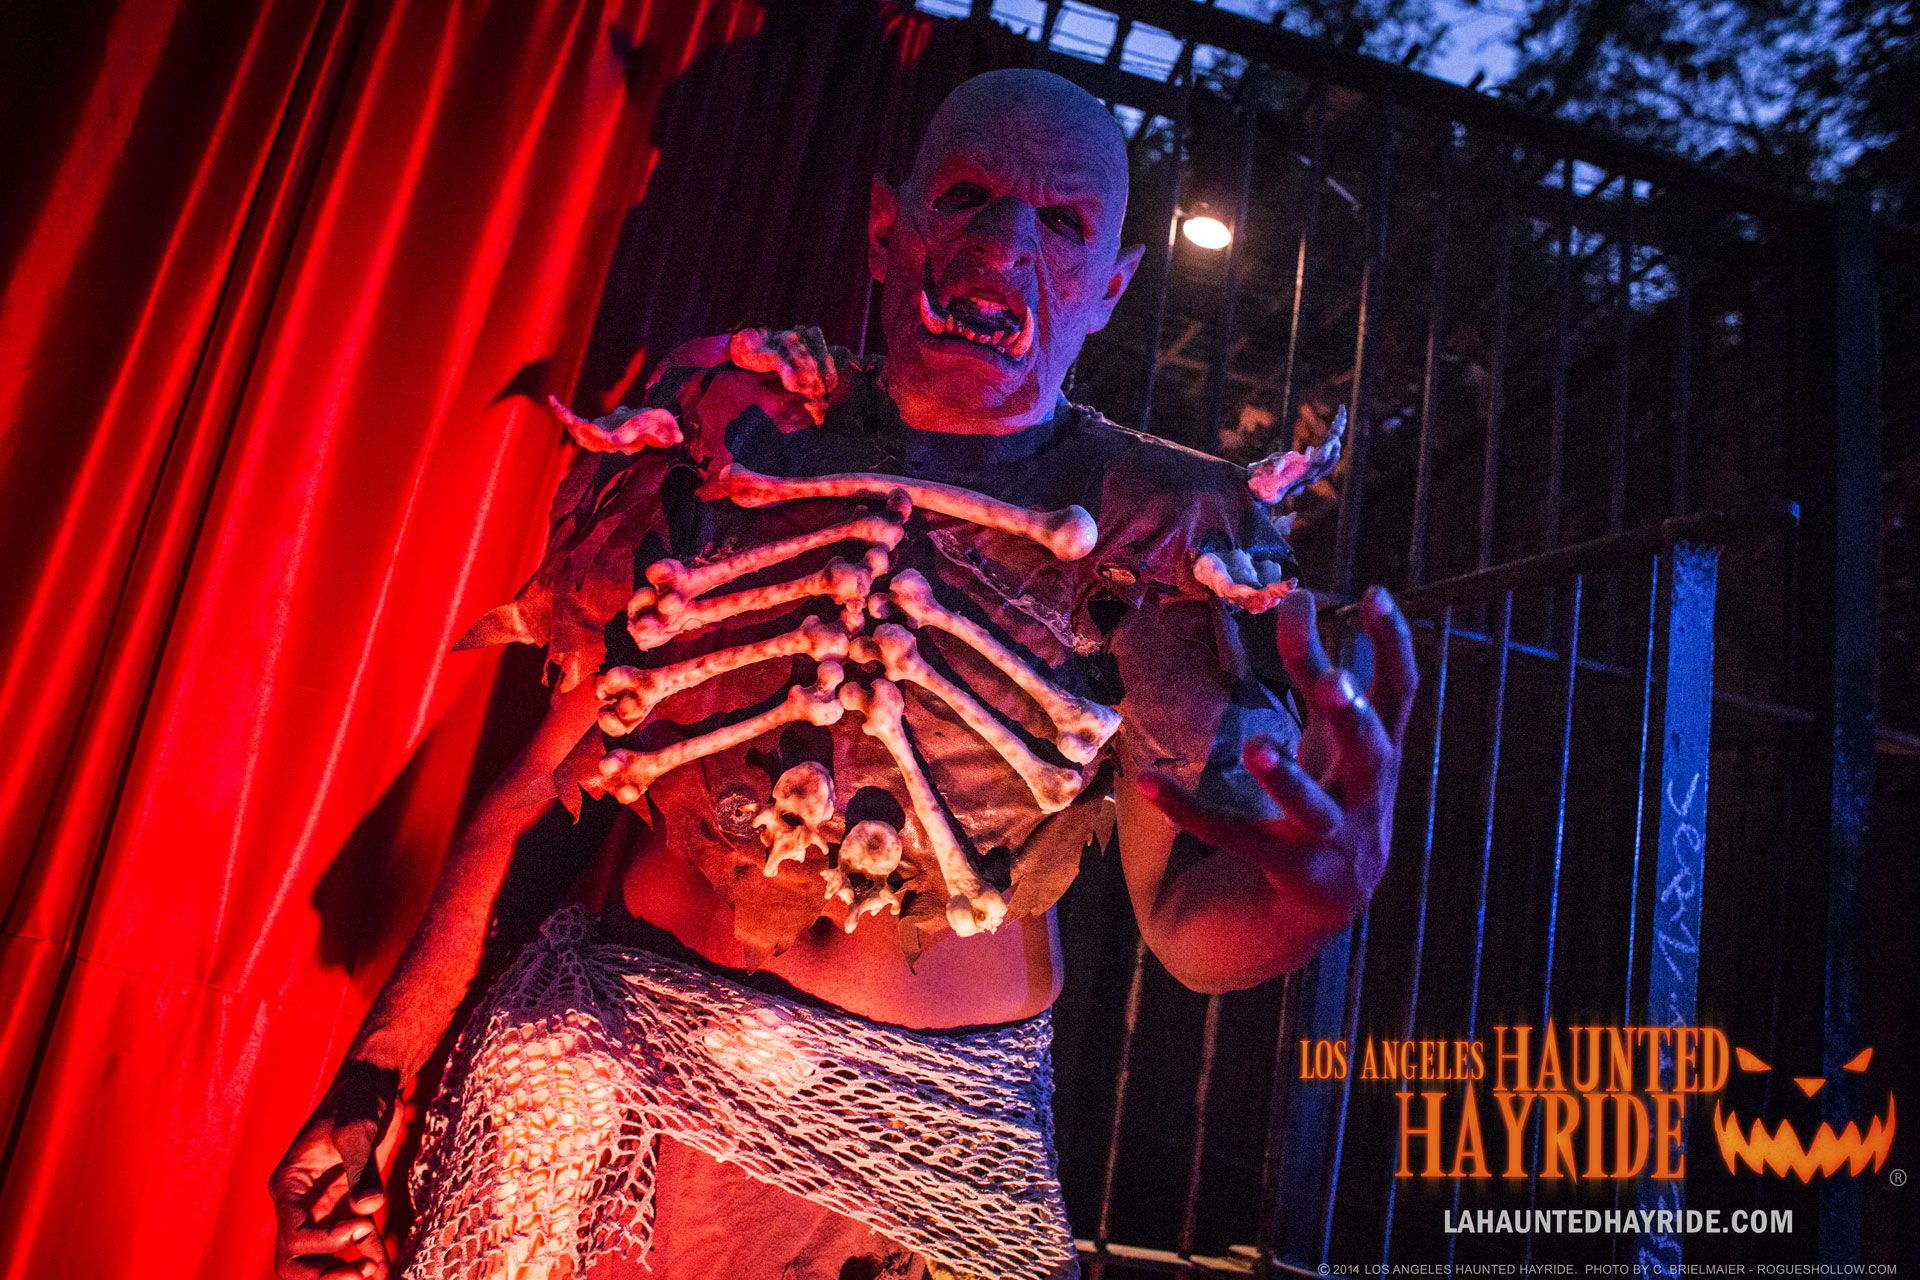 The Los Angeles Haunted Hayride Has Become An Iconic Hollywood Tradition That Remains Unparalleled And Unma Haunted Hayride Los Angeles Haunted Hayride Hayride